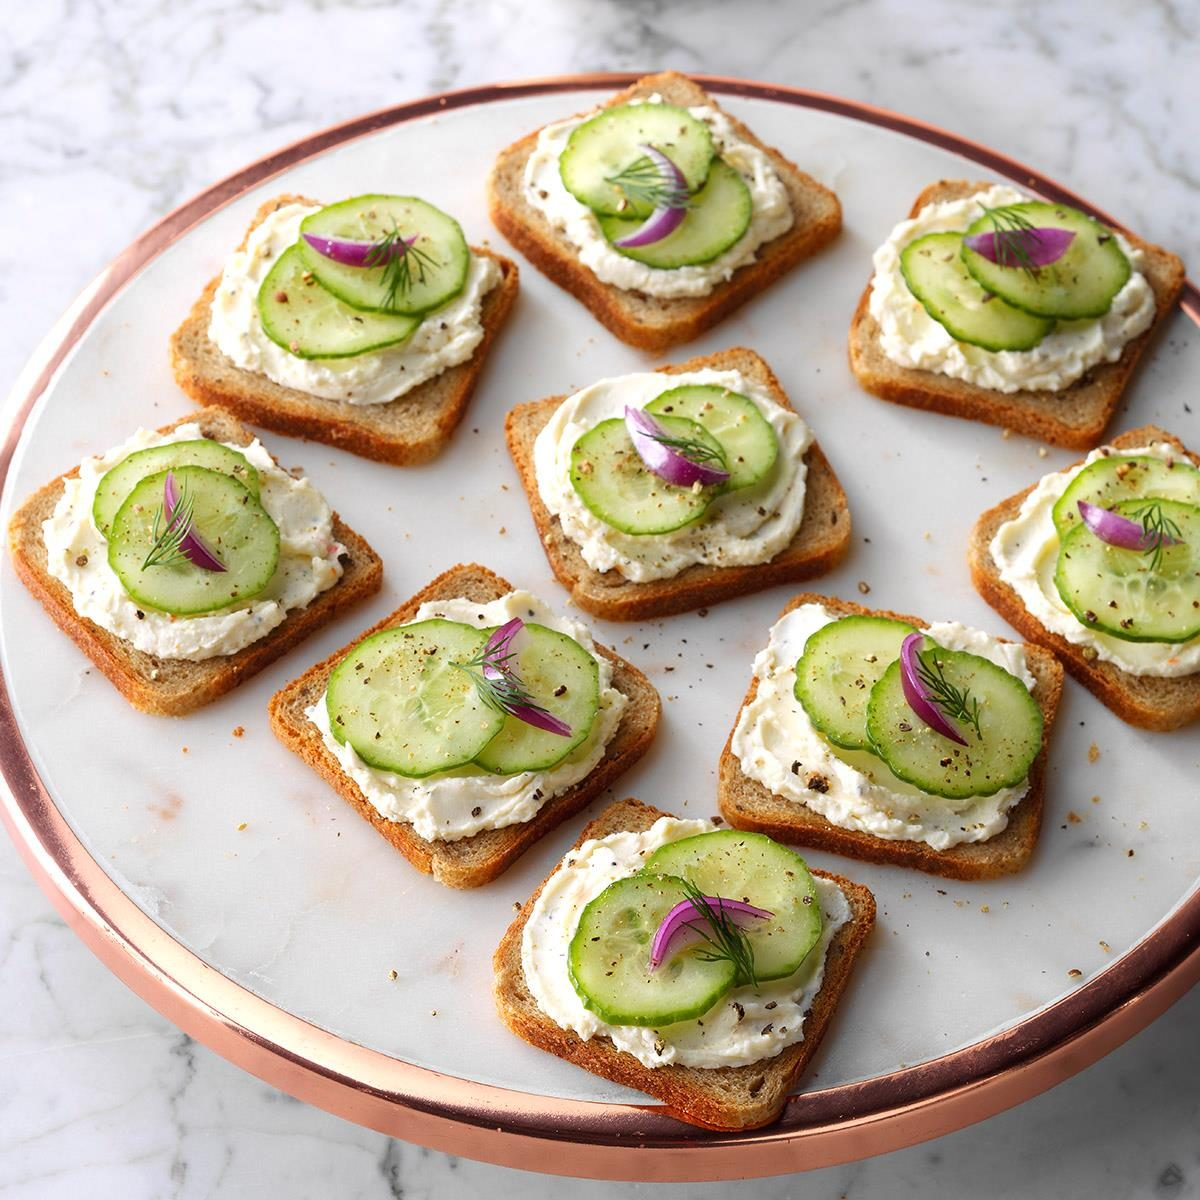 Finger Foods For Parties: 38 Cucumber Recipes To Serve At Your Next Party